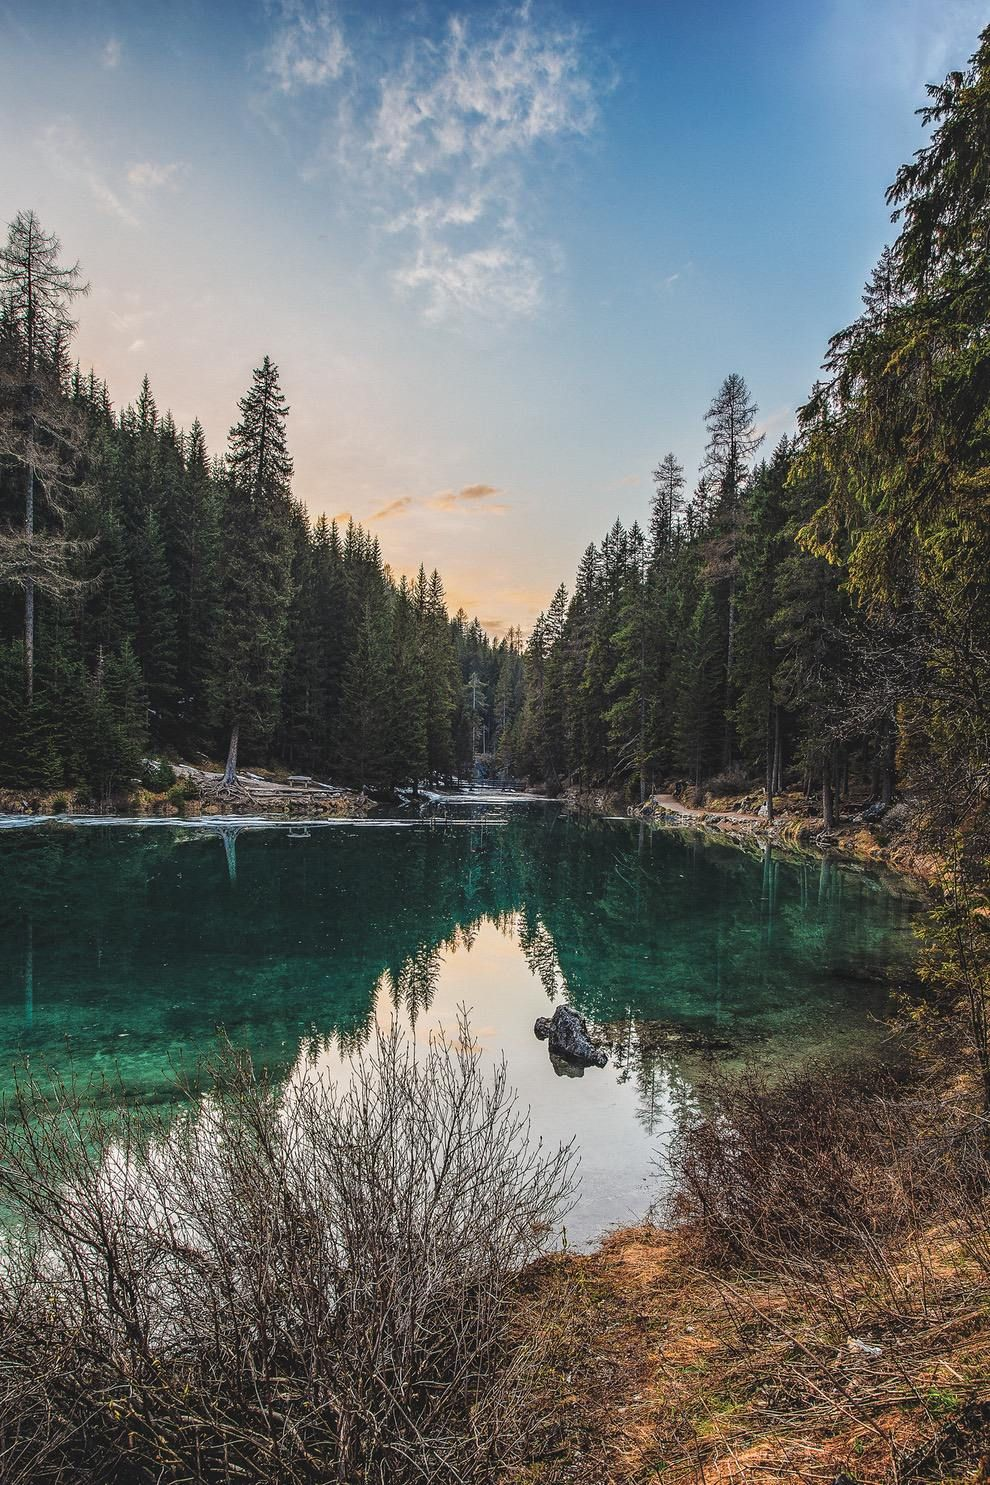 50 Free Beautiful Nature Wallpapers For Iphone That You Ll Love Scenery Photos Landscape Forest Lake